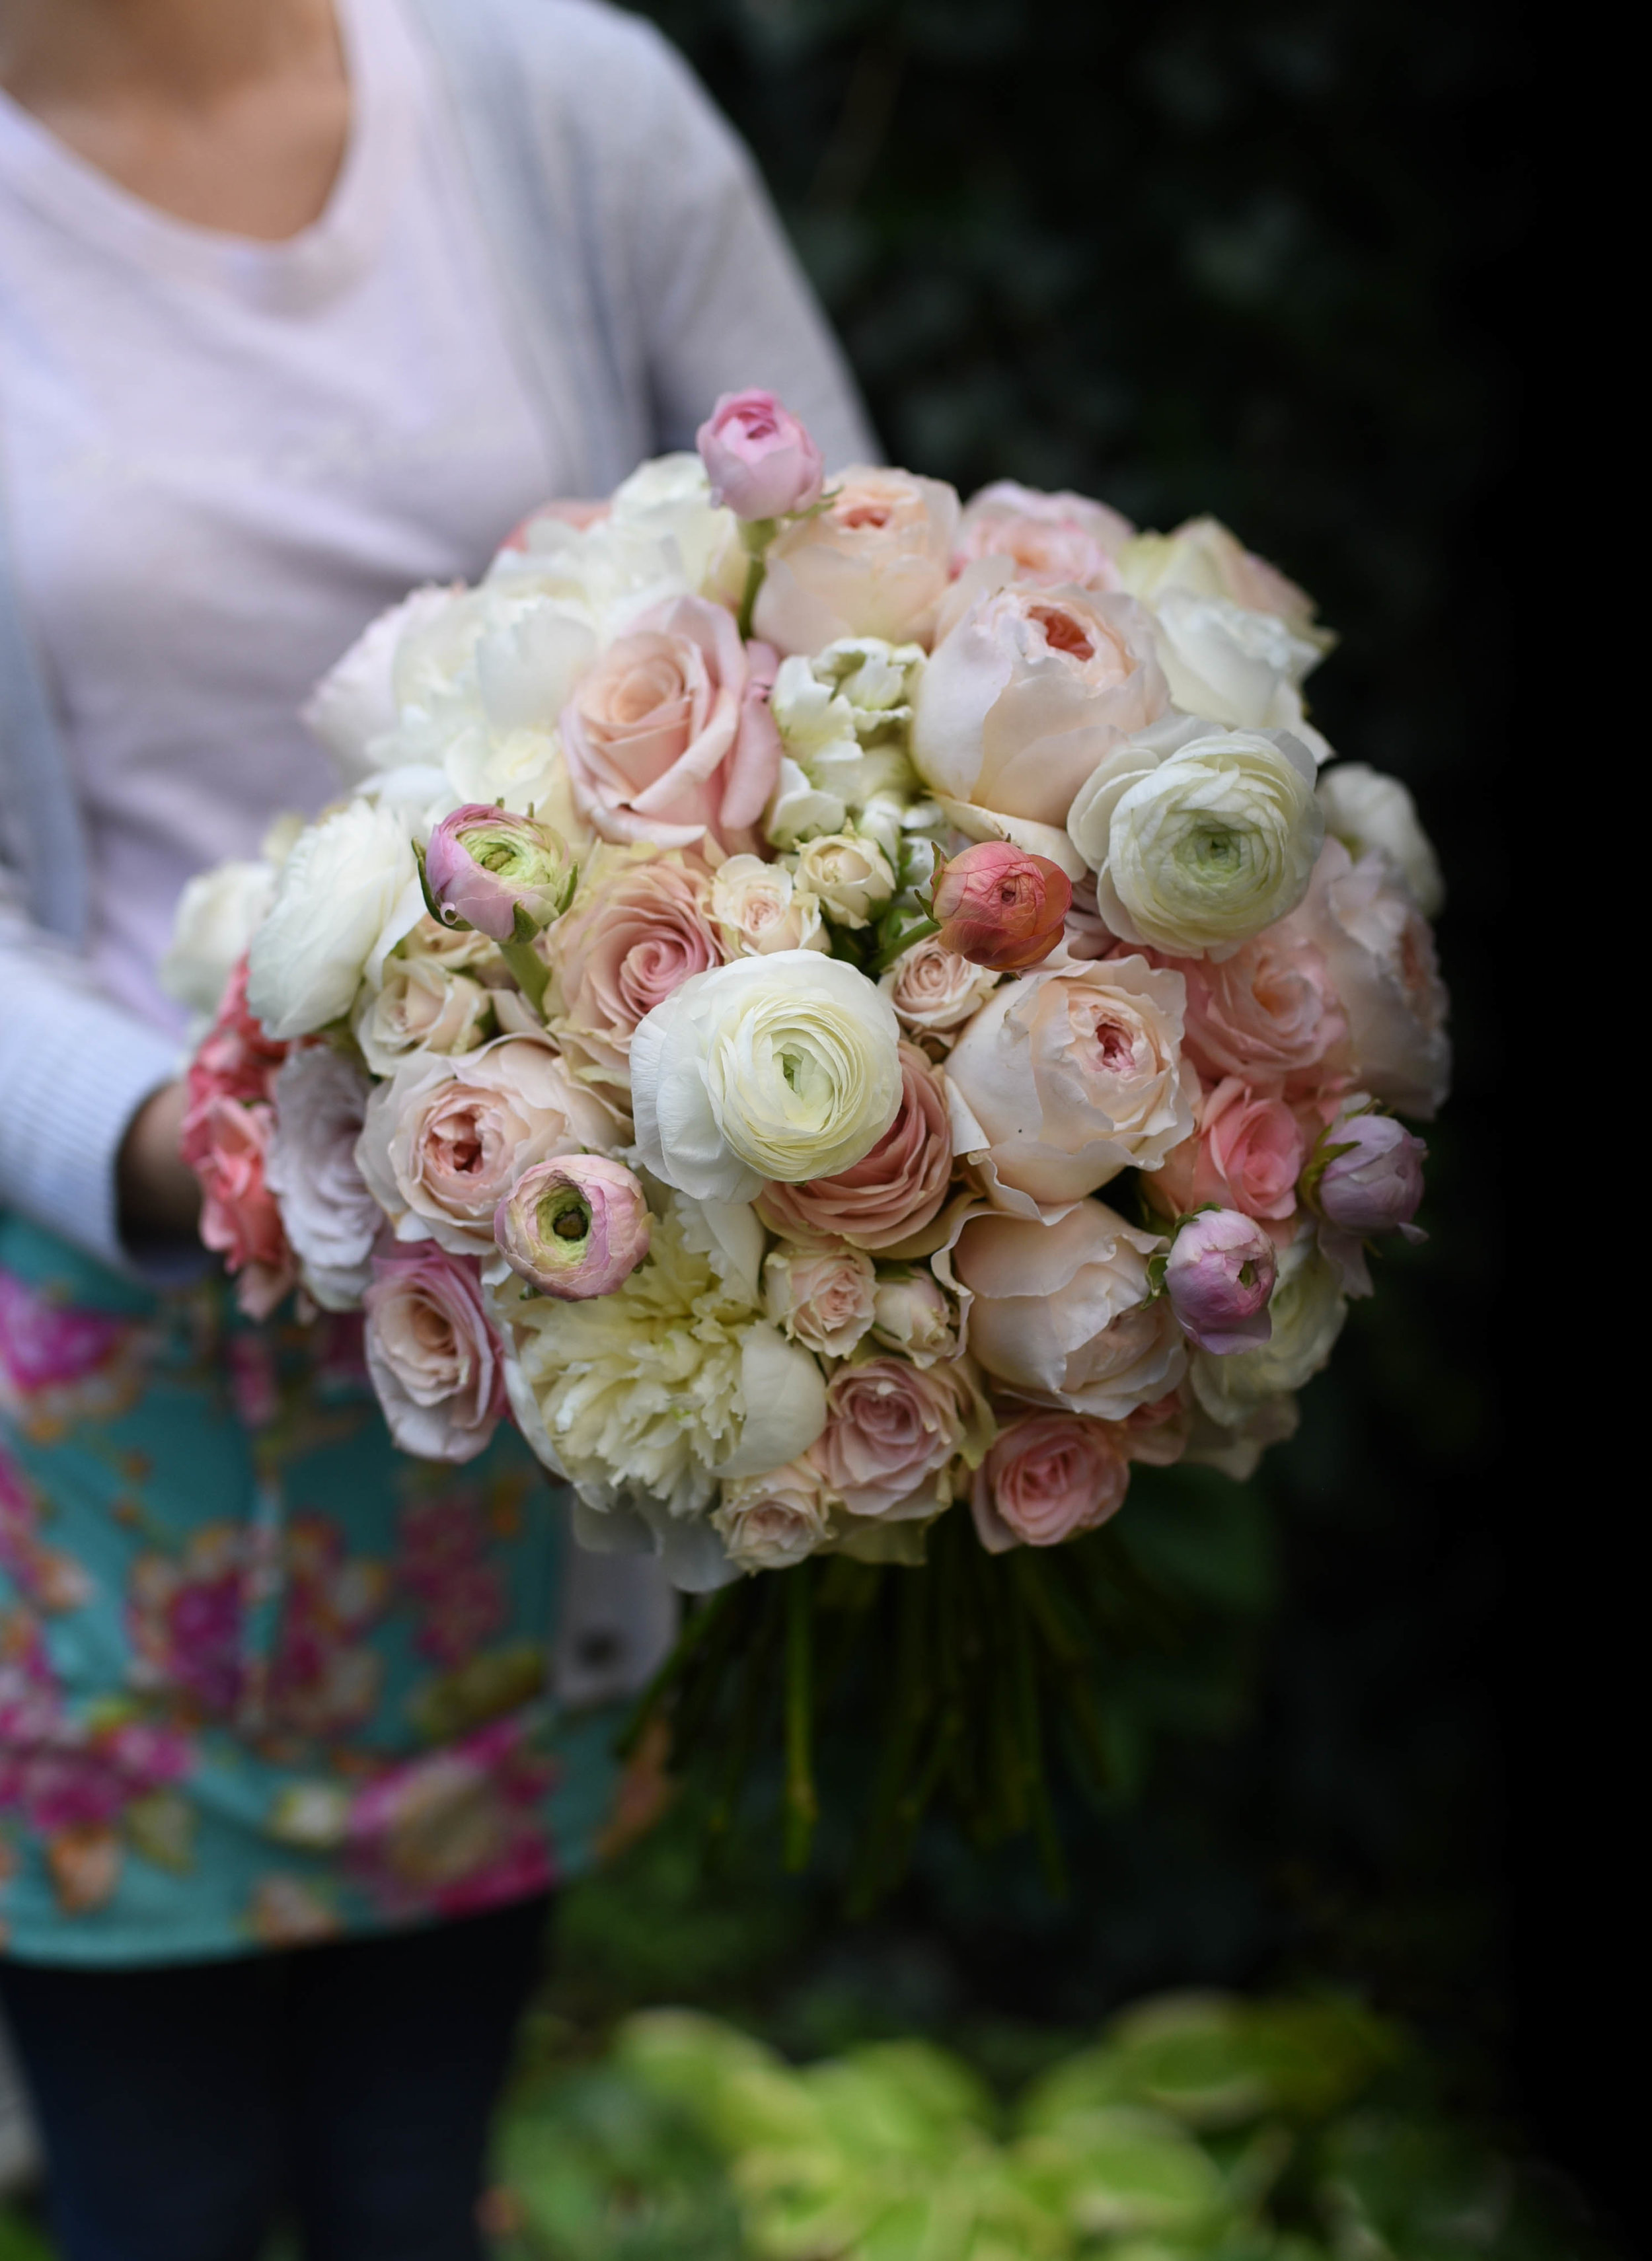 One of the girls holds the completed bouquet, showing just how enormous it is